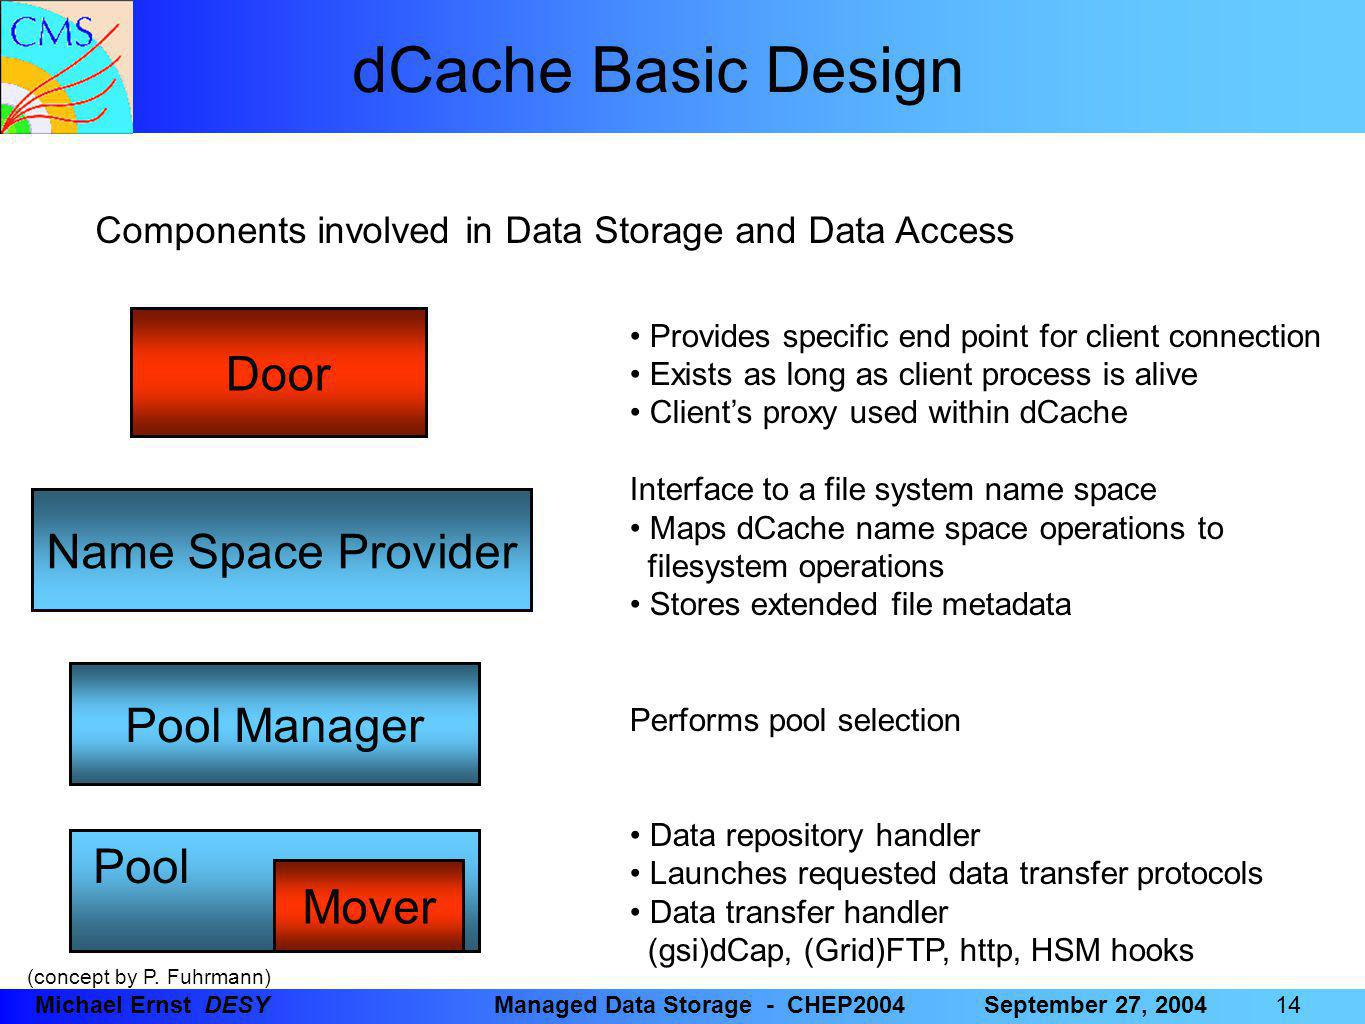 14 Michael Ernst DESYManaged Data Storage - CHEP2004September 27, 2004 dCache Basic Design Door Name Space Provider Pool Manager Mover Components involved in Data Storage and Data Access Provides specific end point for client connection Exists as long as client process is alive Client's proxy used within dCache Interface to a file system name space Maps dCache name space operations to filesystem operations Stores extended file metadata Performs pool selection Data repository handler Launches requested data transfer protocols Data transfer handler (gsi)dCap, (Grid)FTP, http, HSM hooks Pool (concept by P.